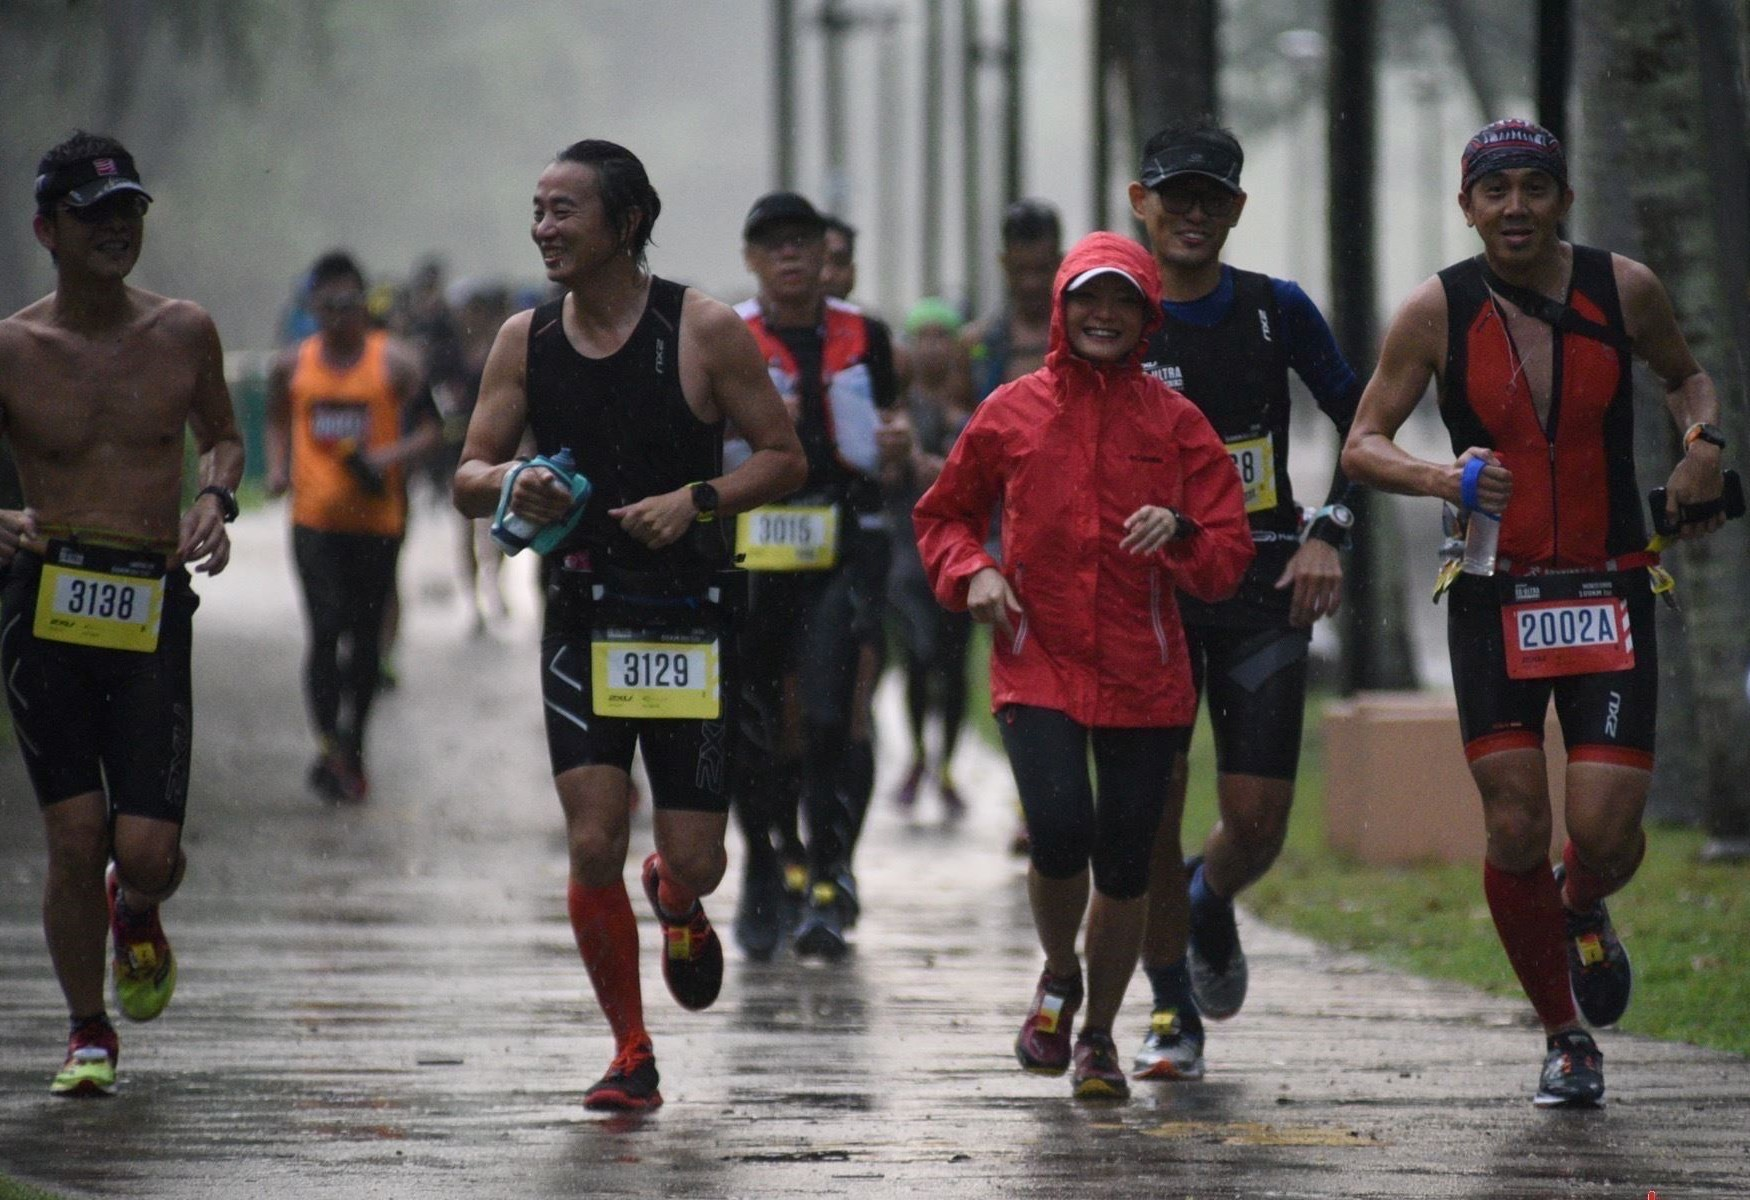 Discussion on this topic: Marathons Safe for Regular Runners Over 50, marathons-safe-for-regular-runners-over-50/